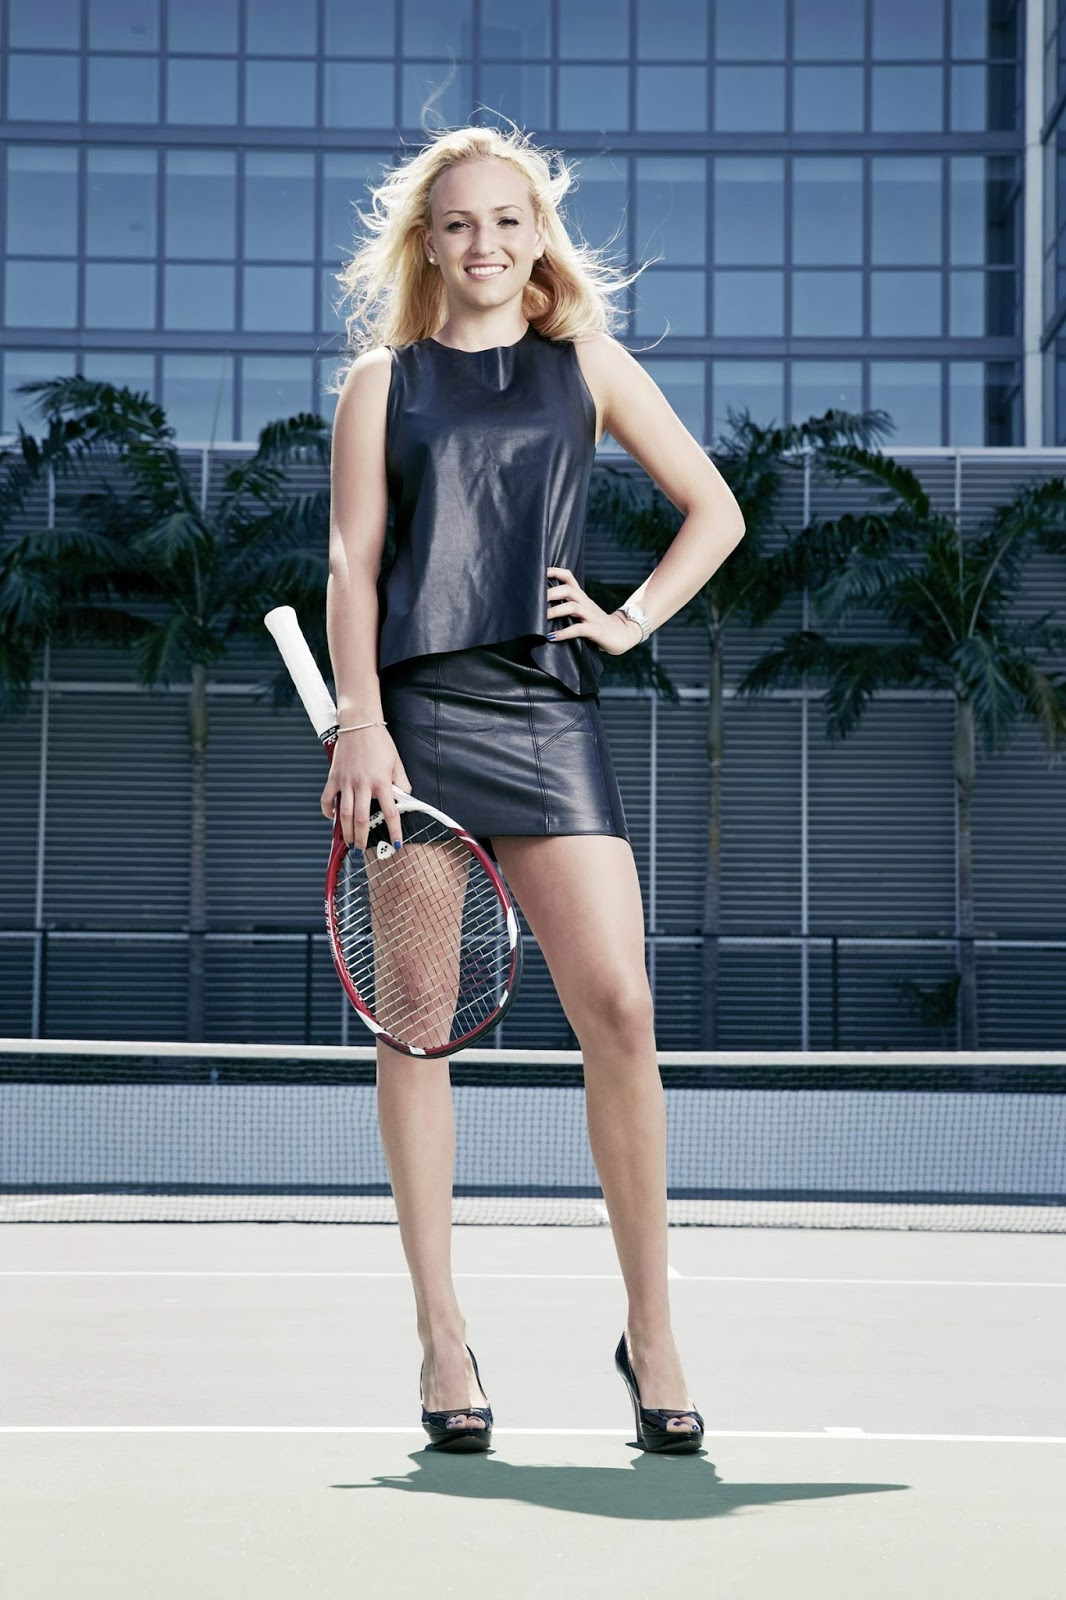 lovely in leather donna vekic in a leather mini